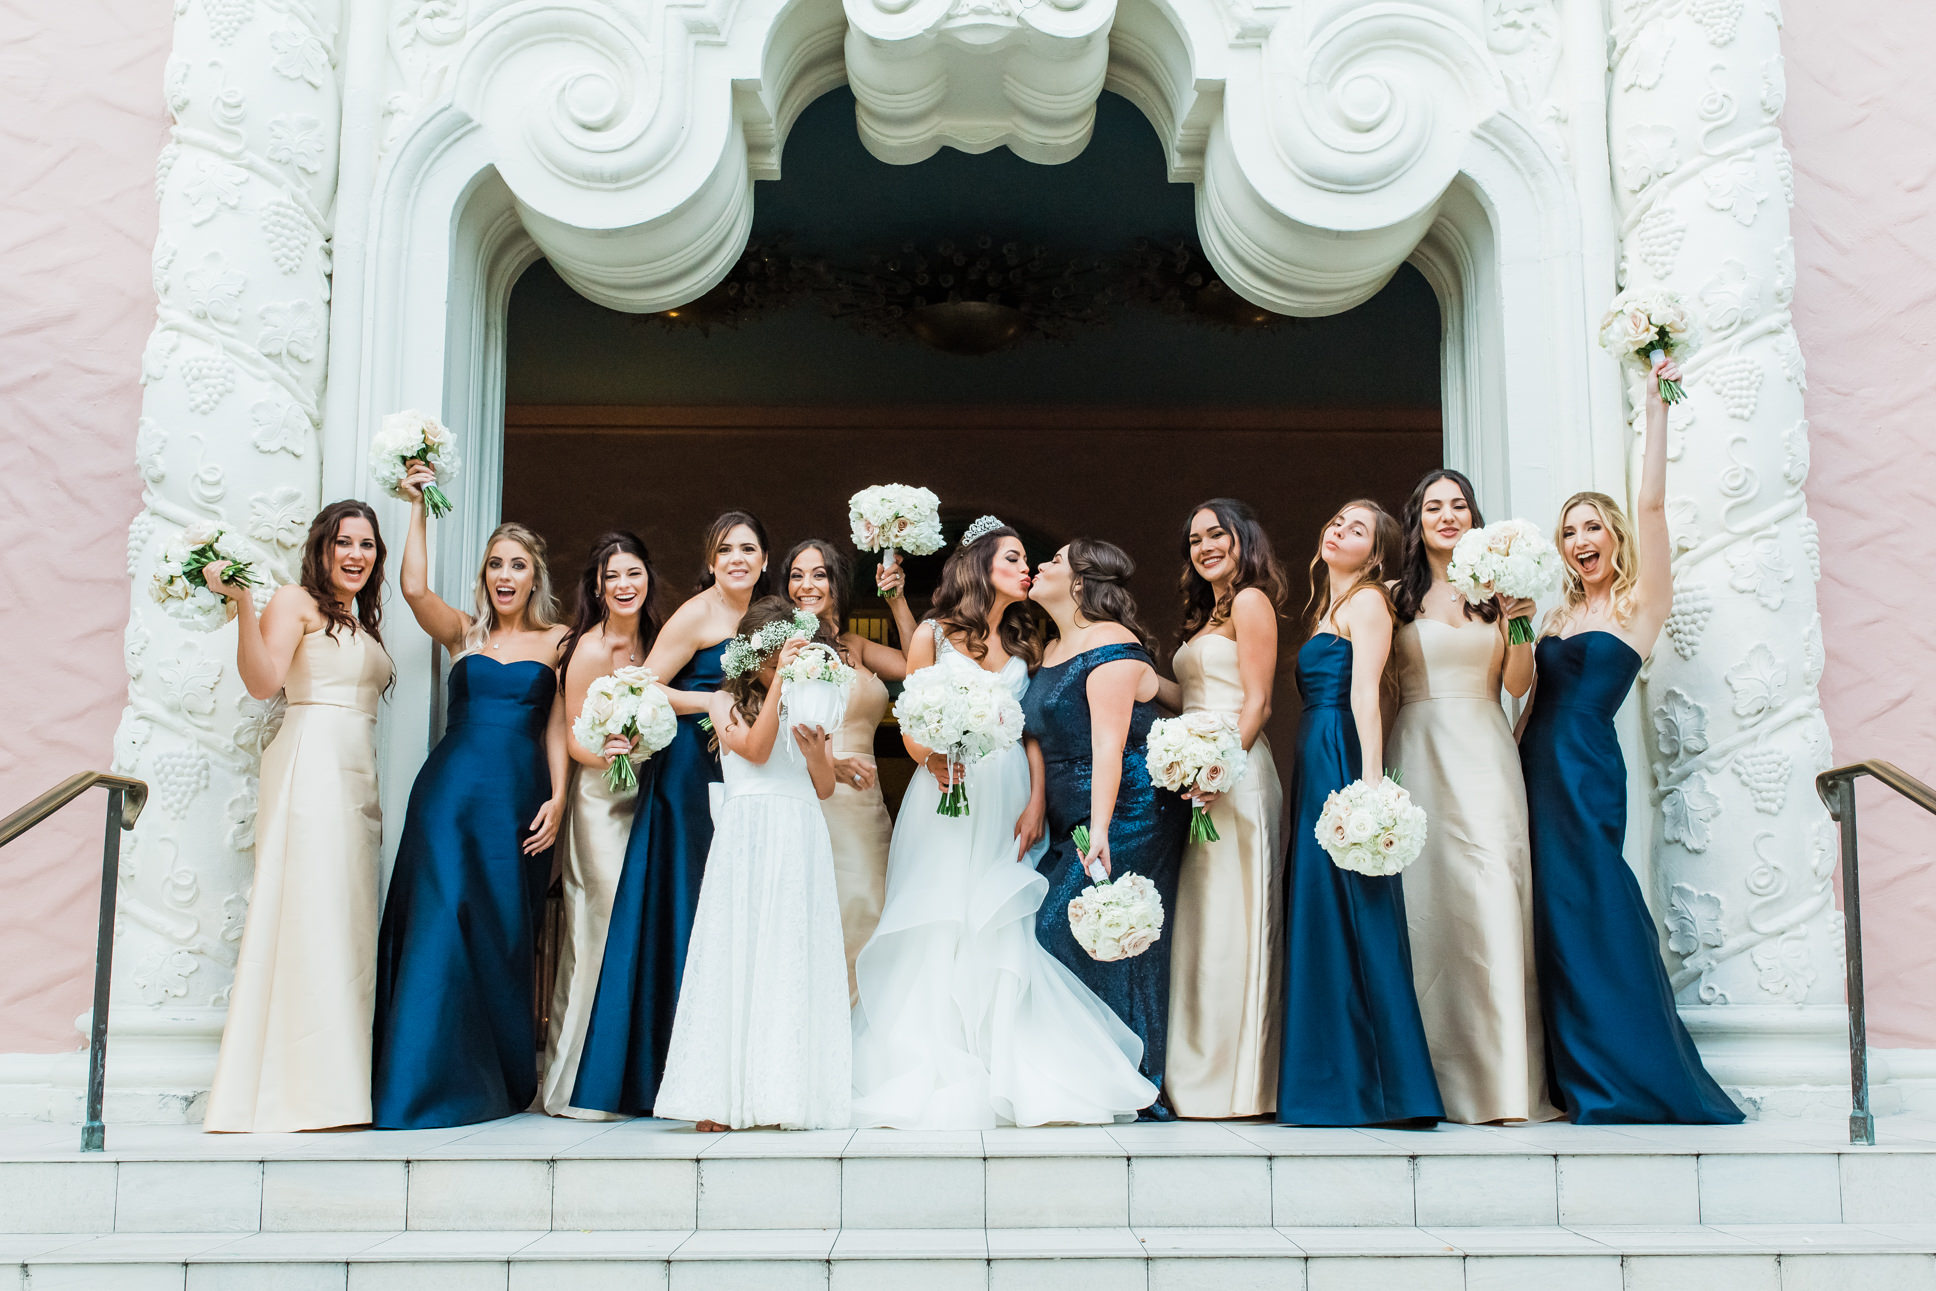 St. Pete Bride in Hayley Paige Wedding Dress, Bridesmaids in Mix and Match Navy Blue and Gold Dresses, Flower Girl in White Dress Fun Bridal Party Portrait